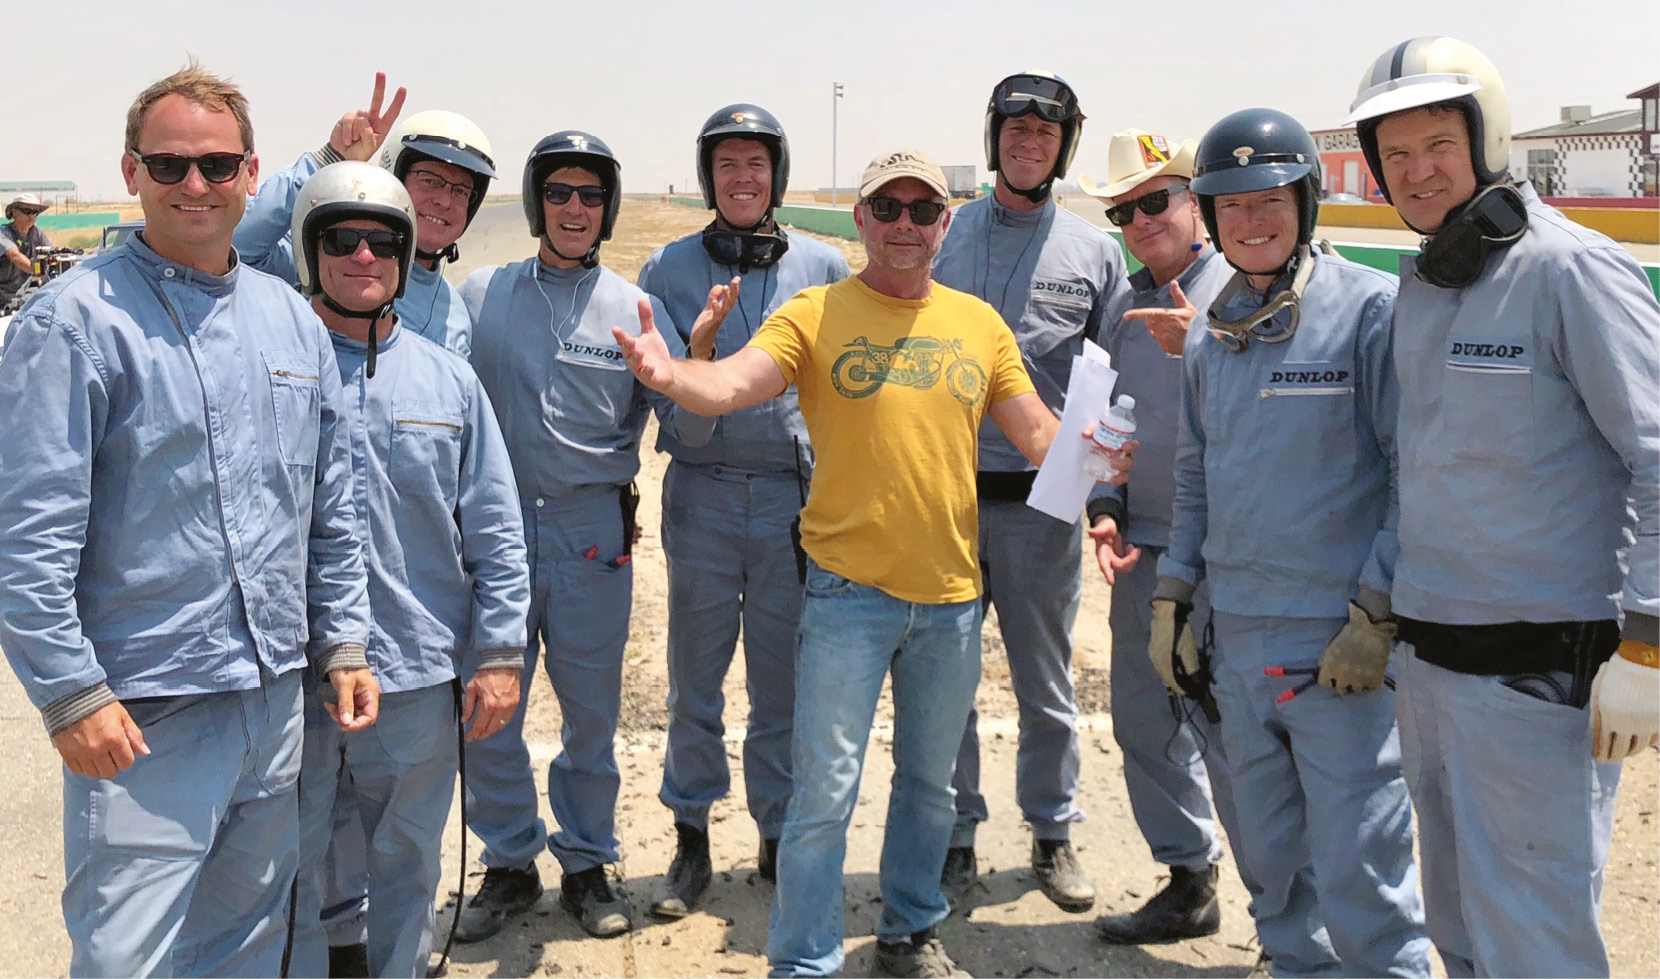 Stunt team with co-ordinator Nagle at centre, Derek Hill on the far right.